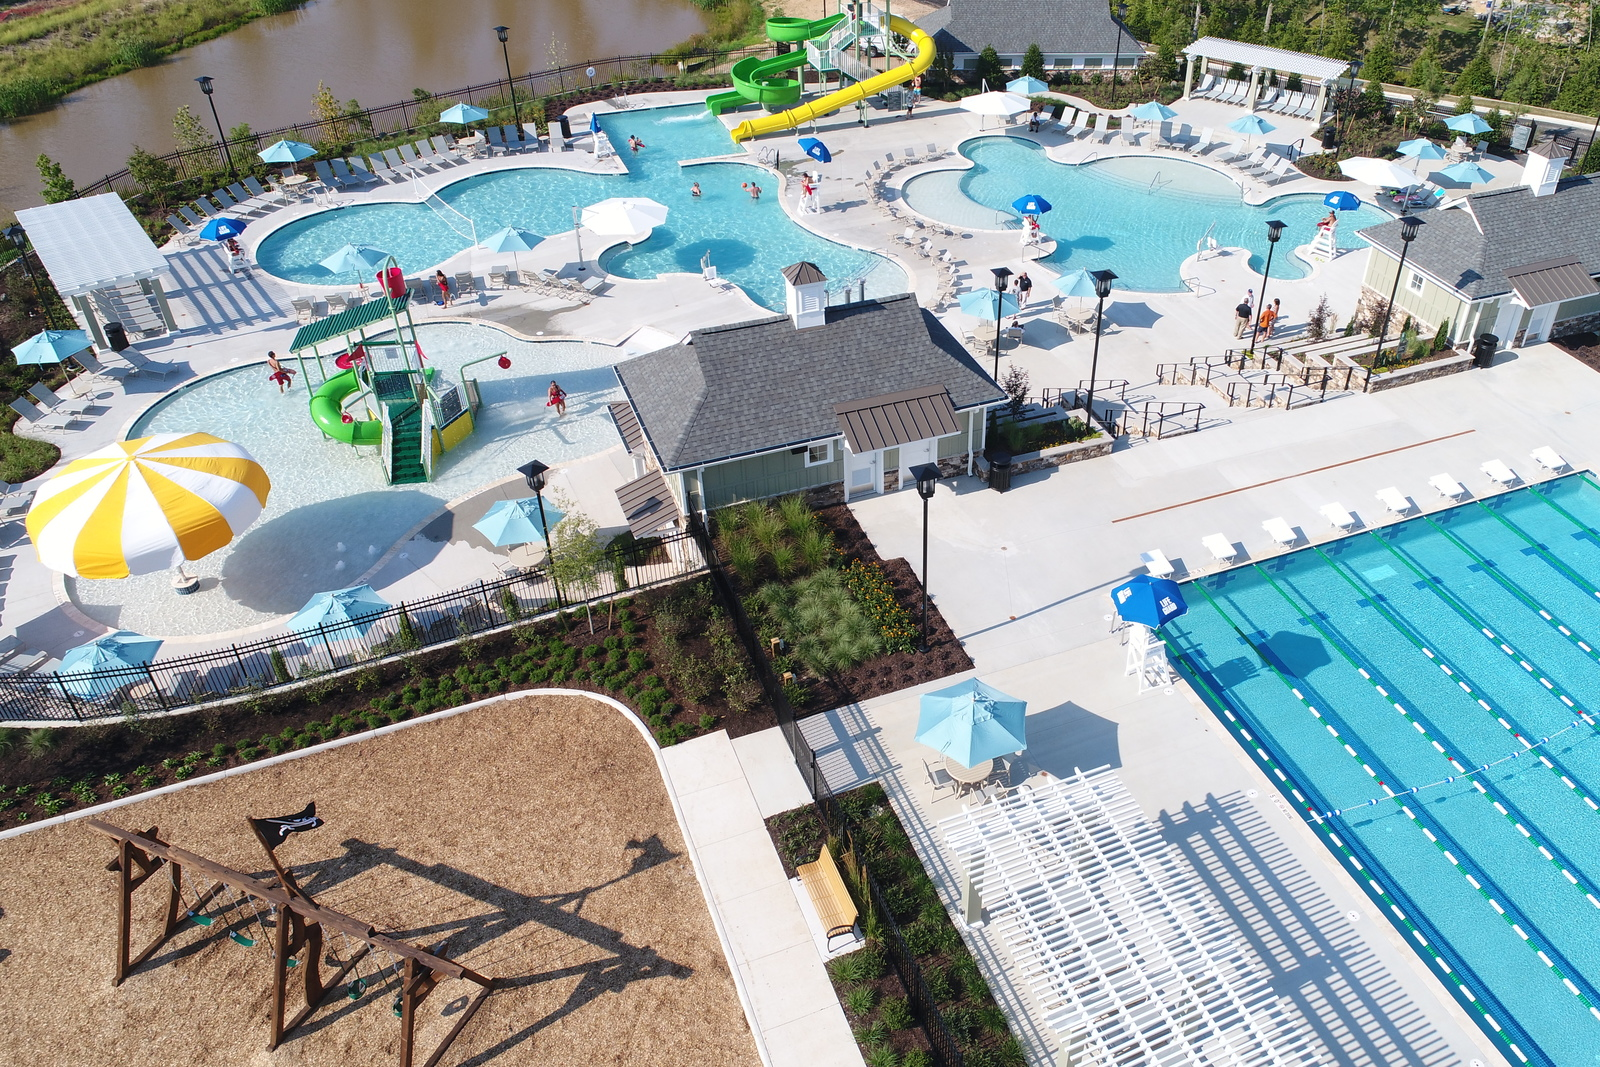 Come tourthe world class Magnolia Green amenities--live like you're on vacation with pools, golf and so much more! Private pool and club coming as well for our Charleston Club homeowners.